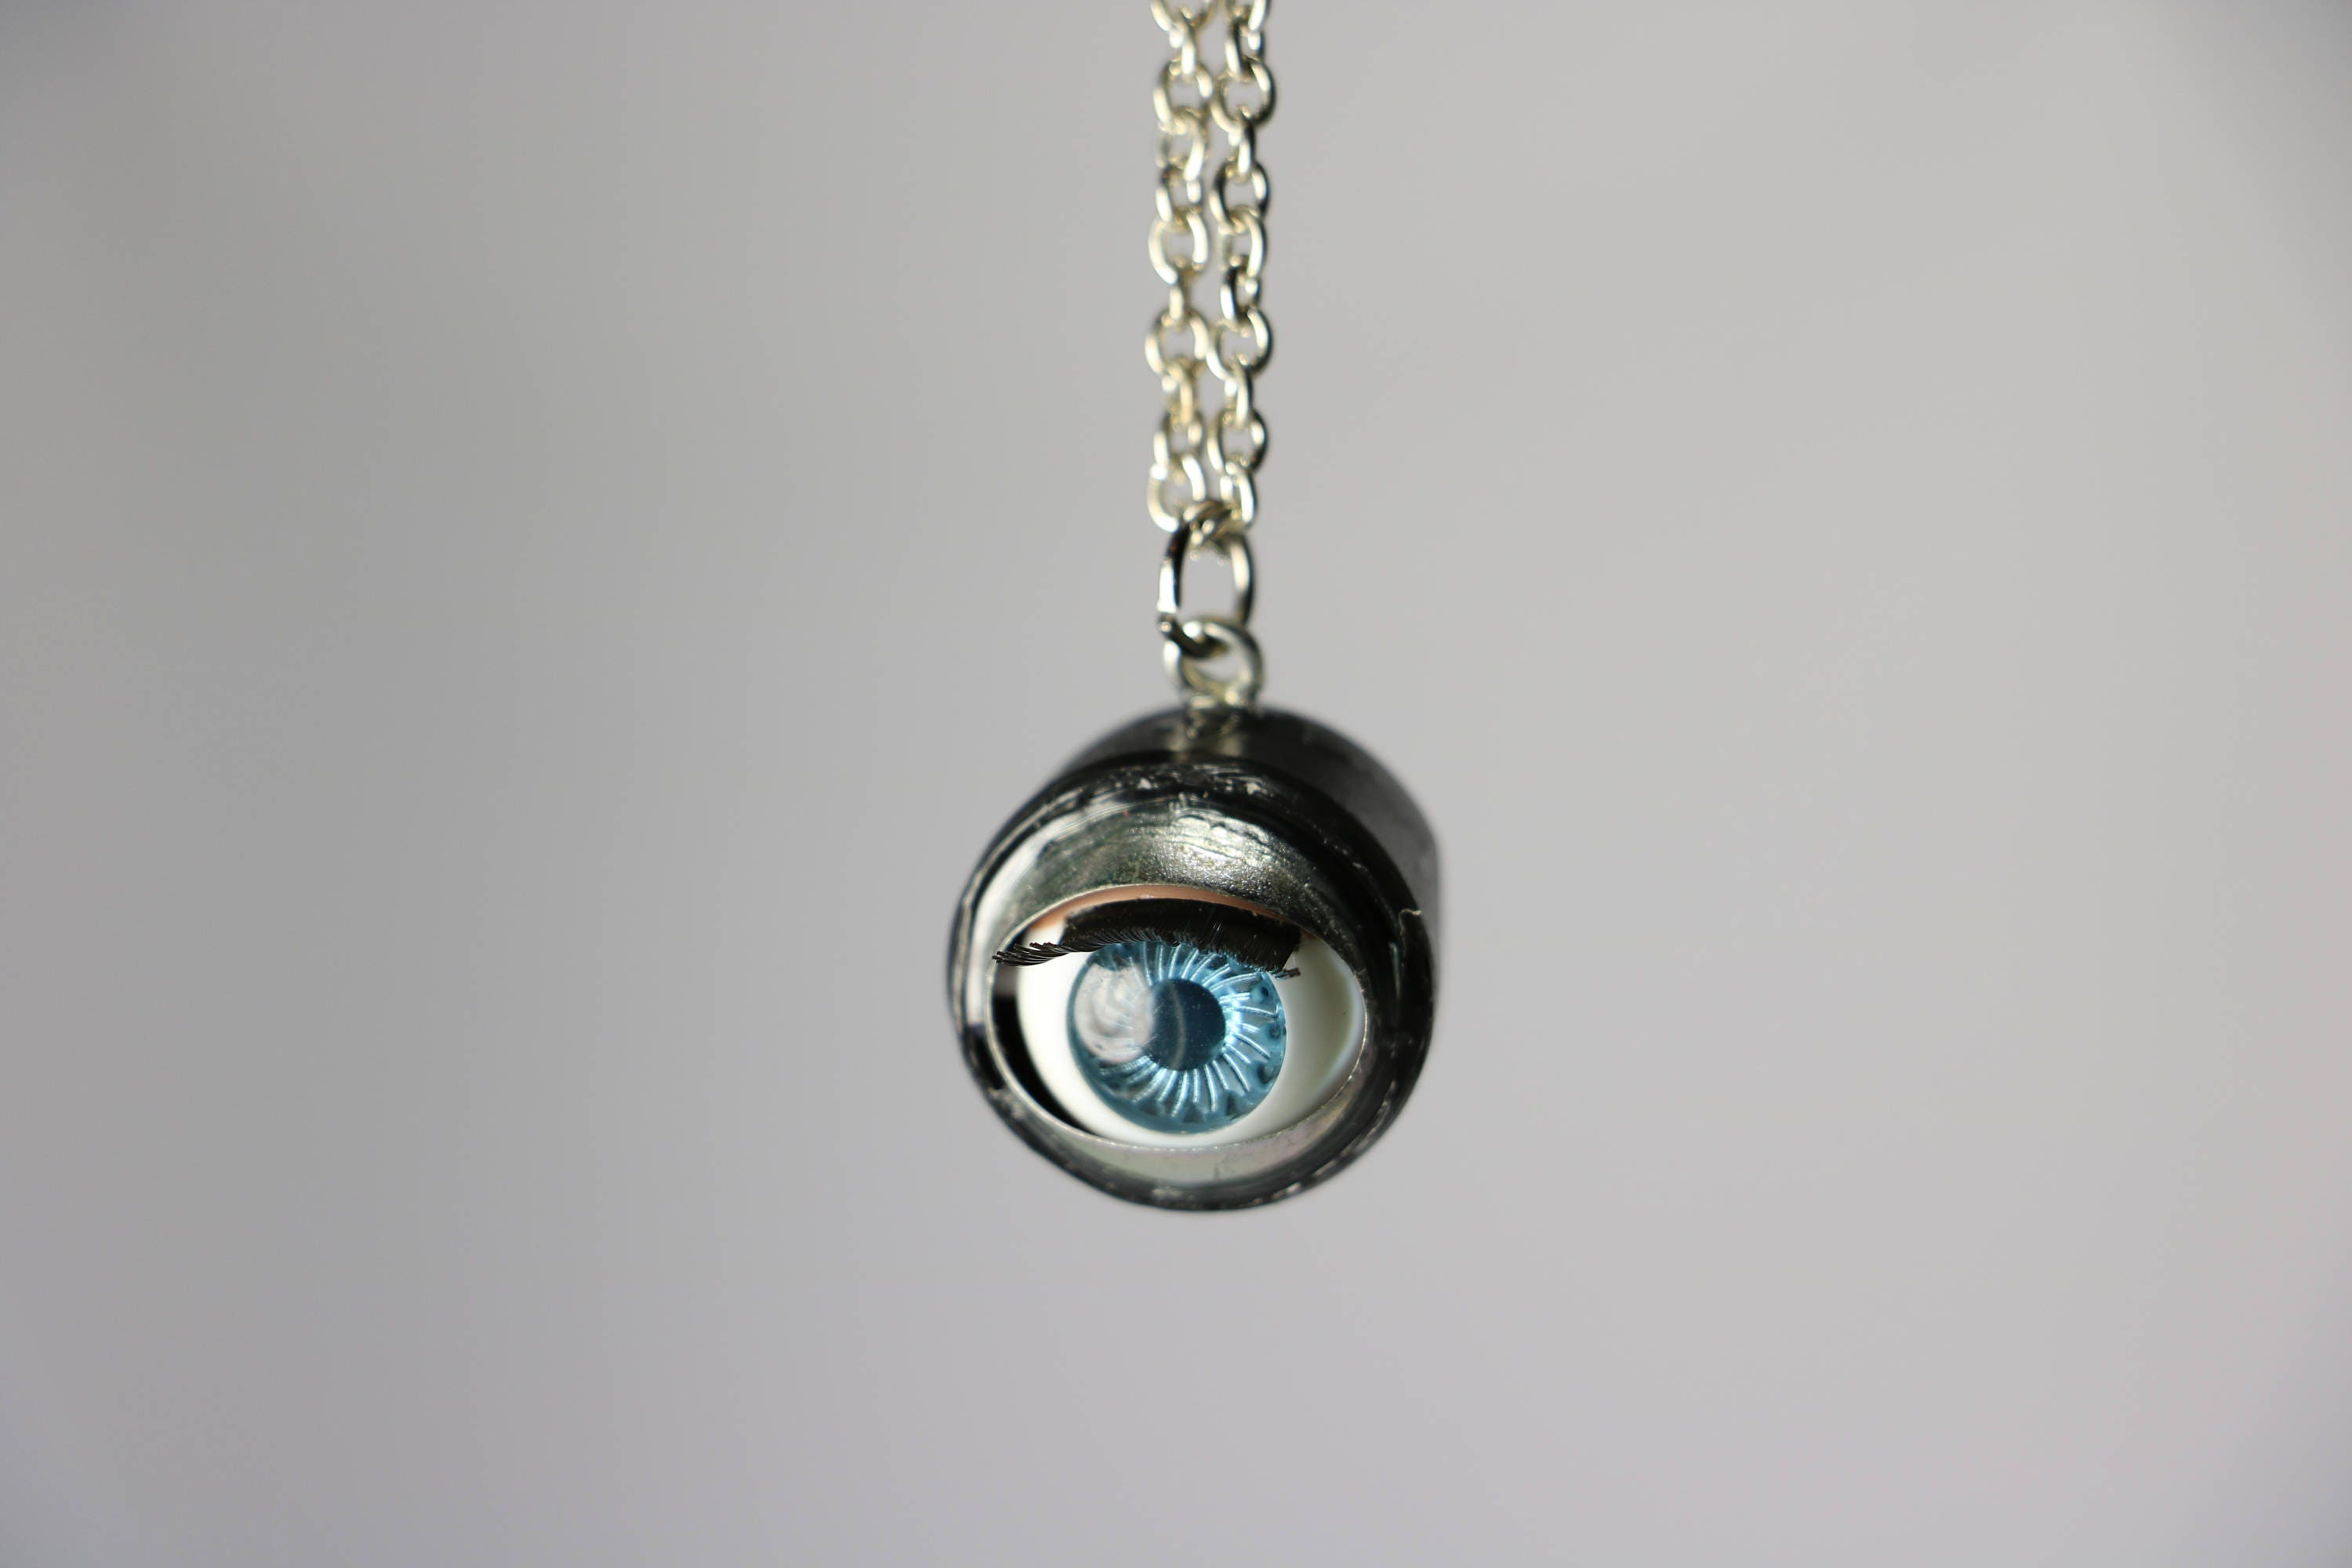 visual necklace goth resin harajuku eyeball pastel kei pendant decoden photos gatumi fashion